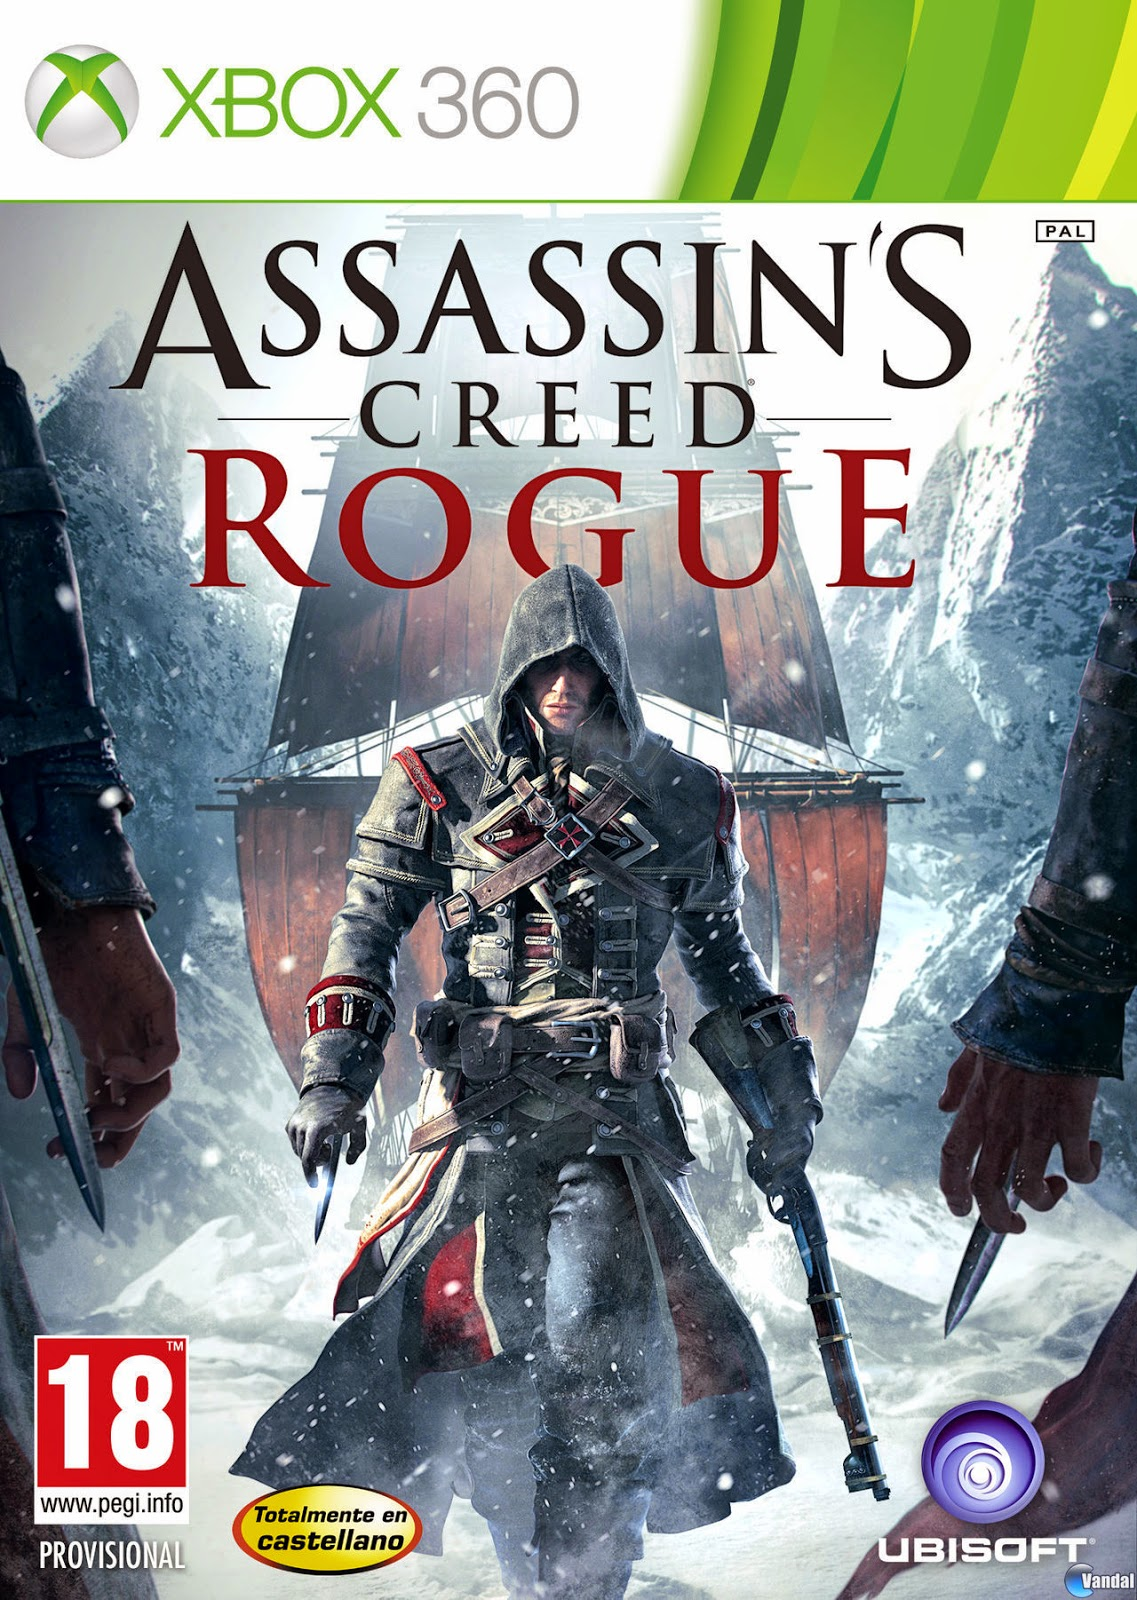 assassins creed rogue multilenguaje espa209ol xbox 360